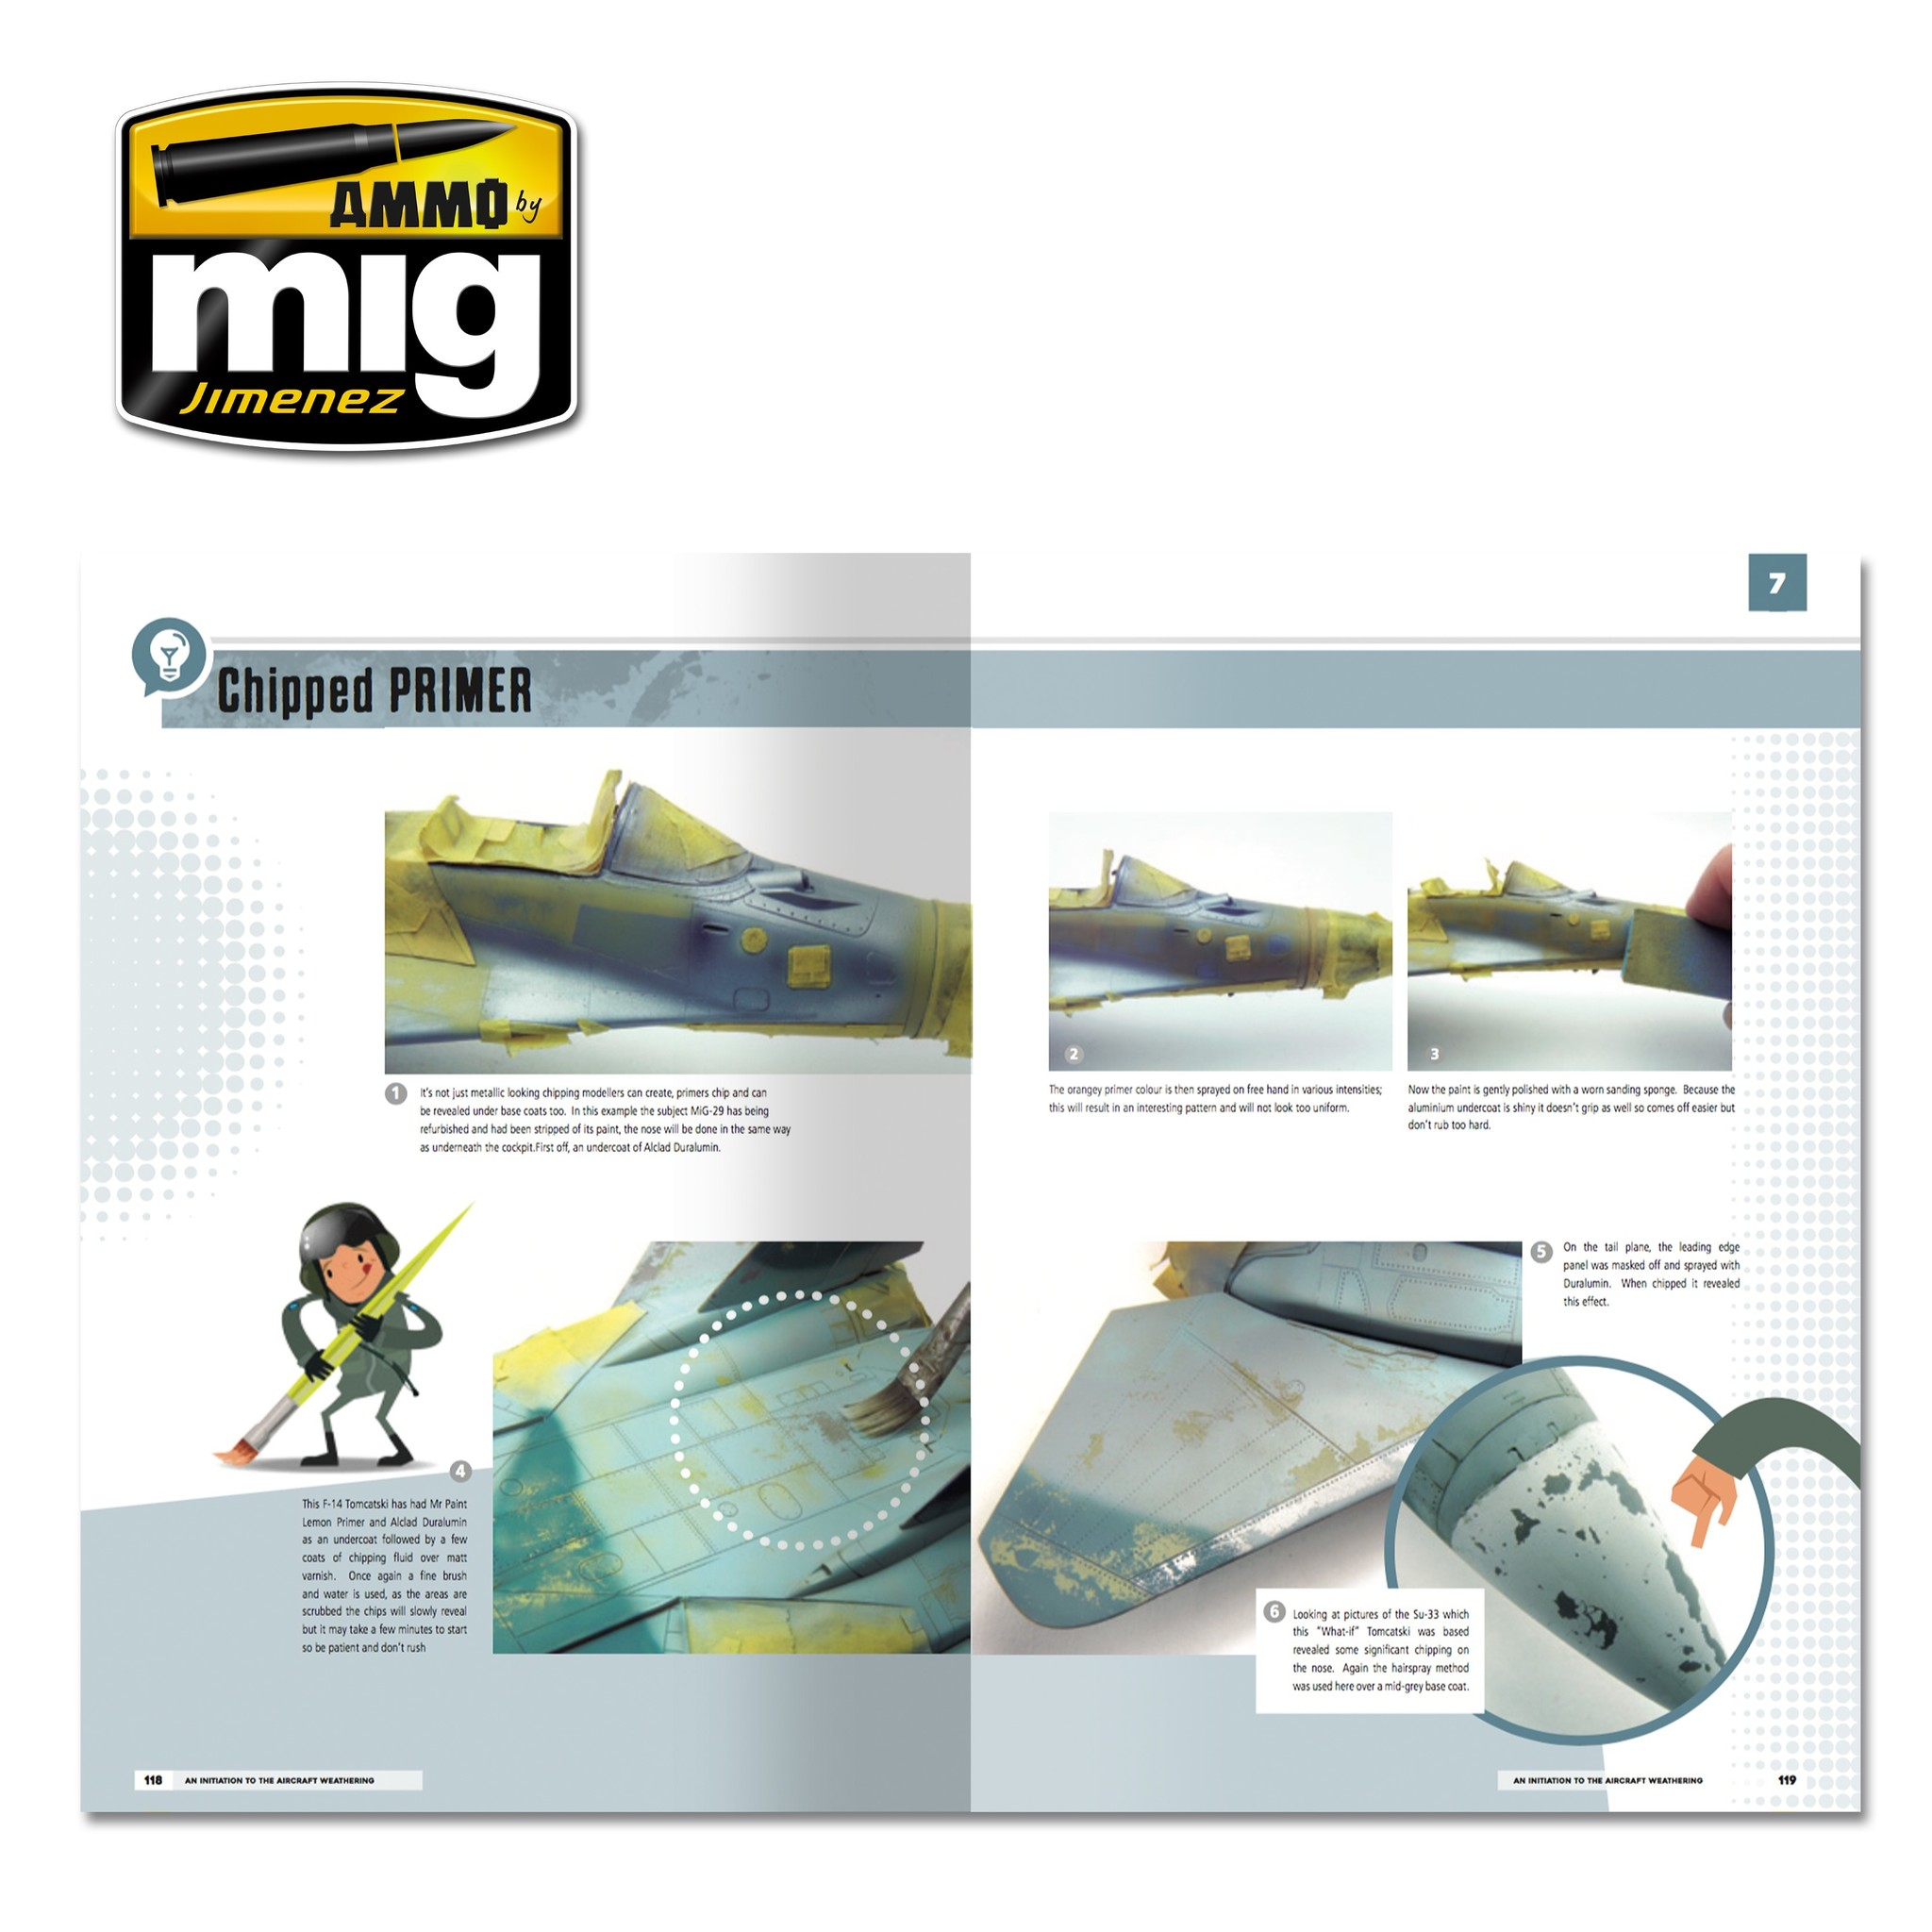 Ammo by Mig Jimenez Modelling School: An Initiation To Aircraft Weathering English - A.MIG-6030